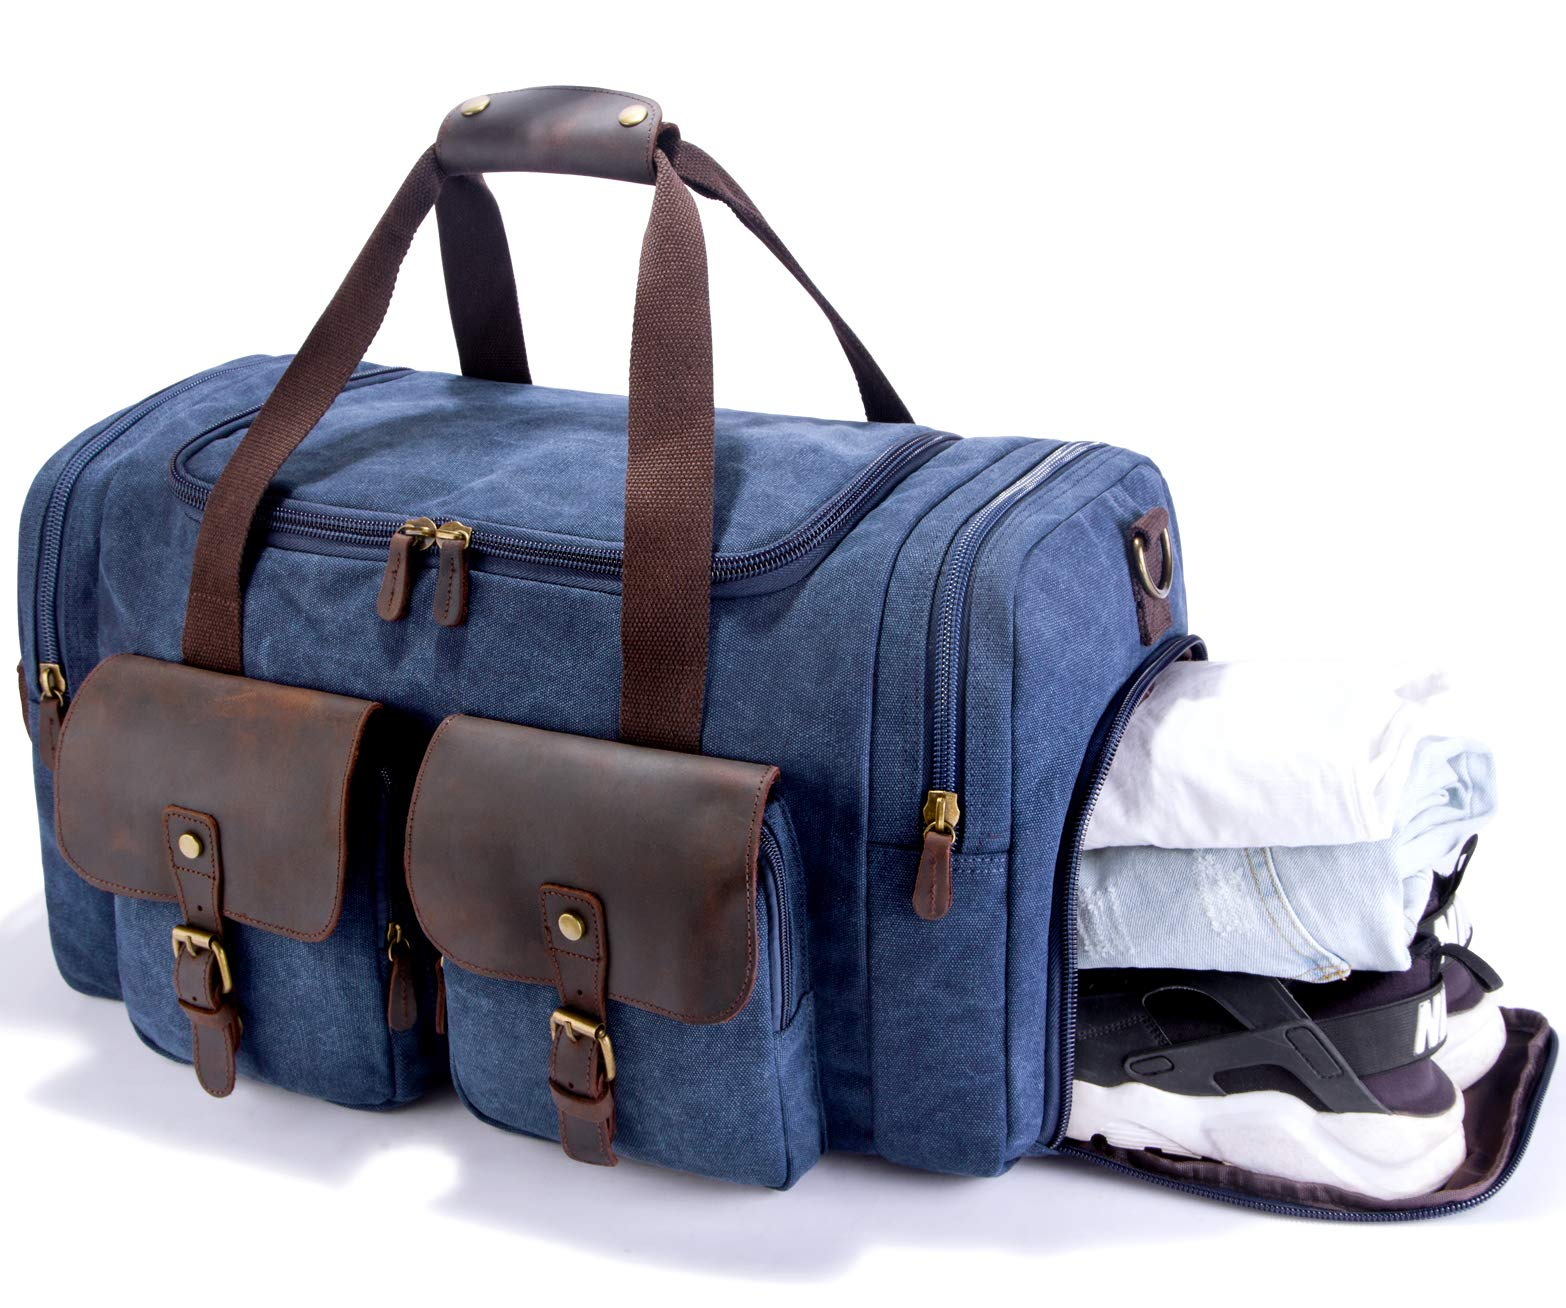 SUVOM Canvas Duffle Bag Leather Weekend Bag Carry On Travel Bag Luggage Oversized Holdalls for Men and Women(Blue)